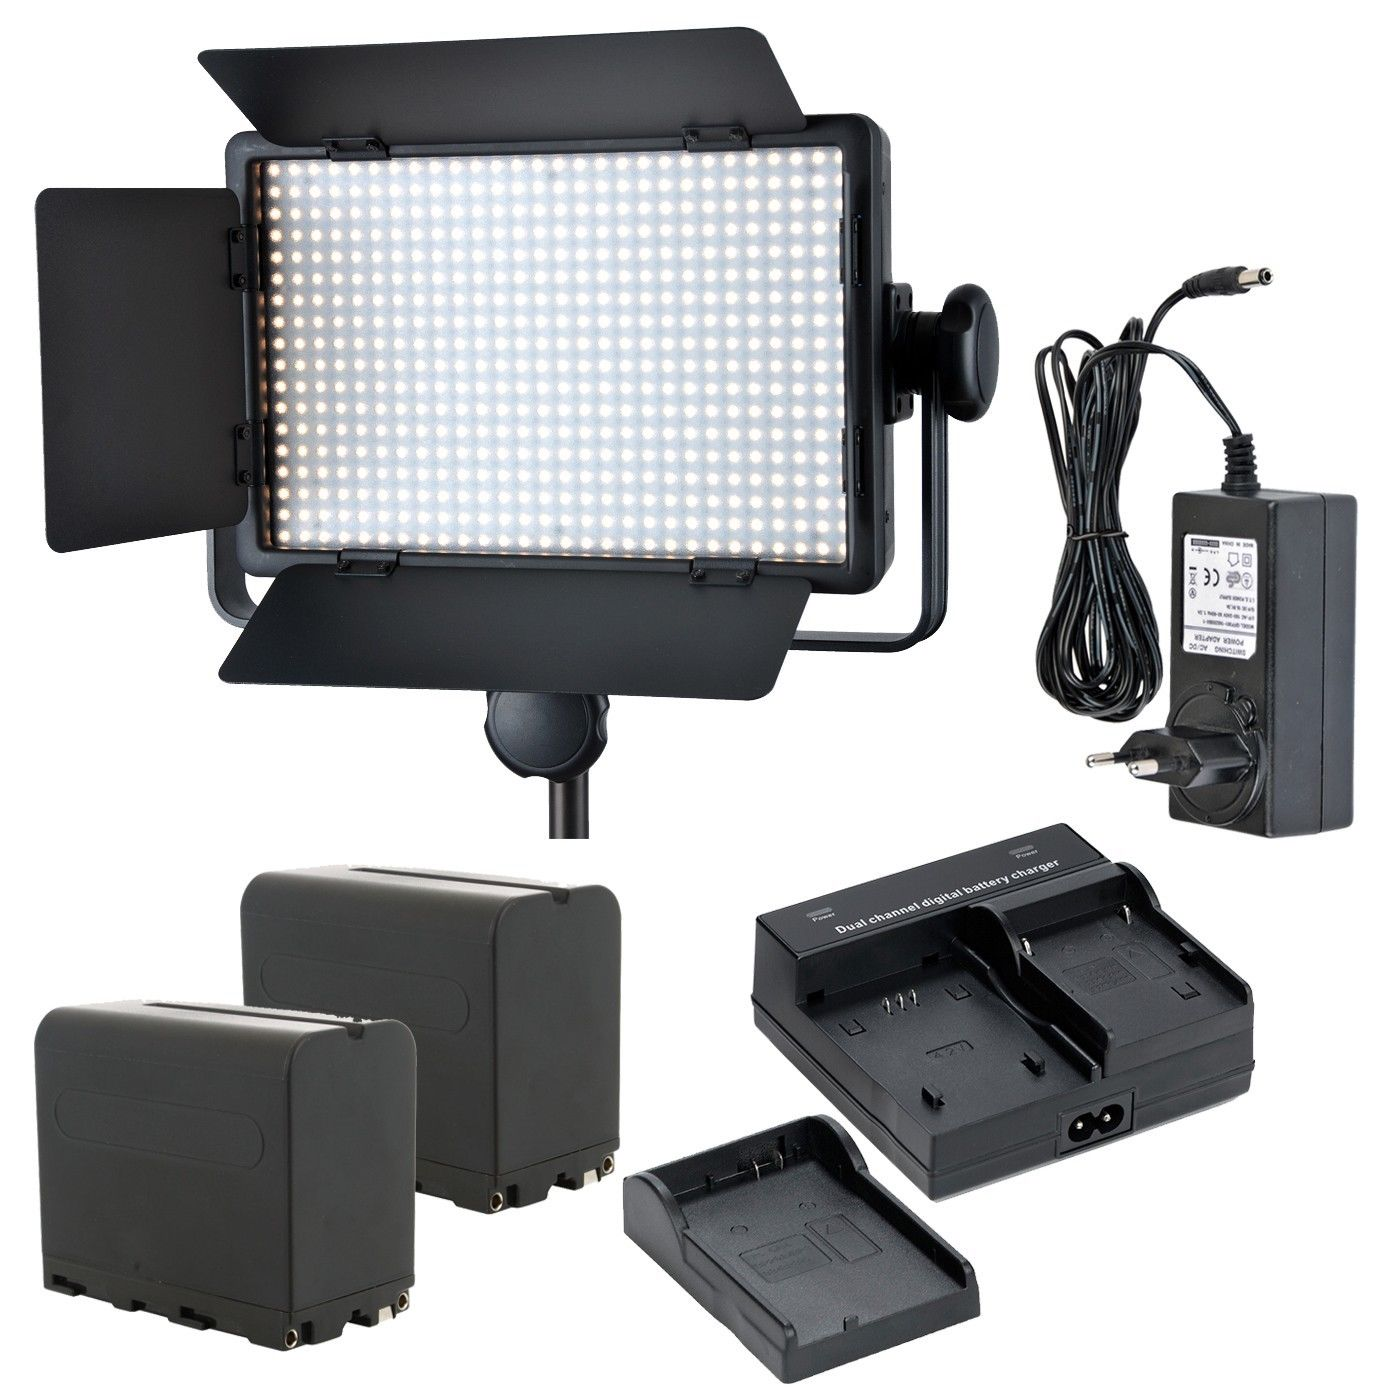 Godox LED500C ( Lux: 2900) 3300K-5600K LED Video Continuous Light Lamp Panel + Dual charger + Battery godox professional led video light led500c changeable version 3300k 5600k battery dual charger 2m light stand